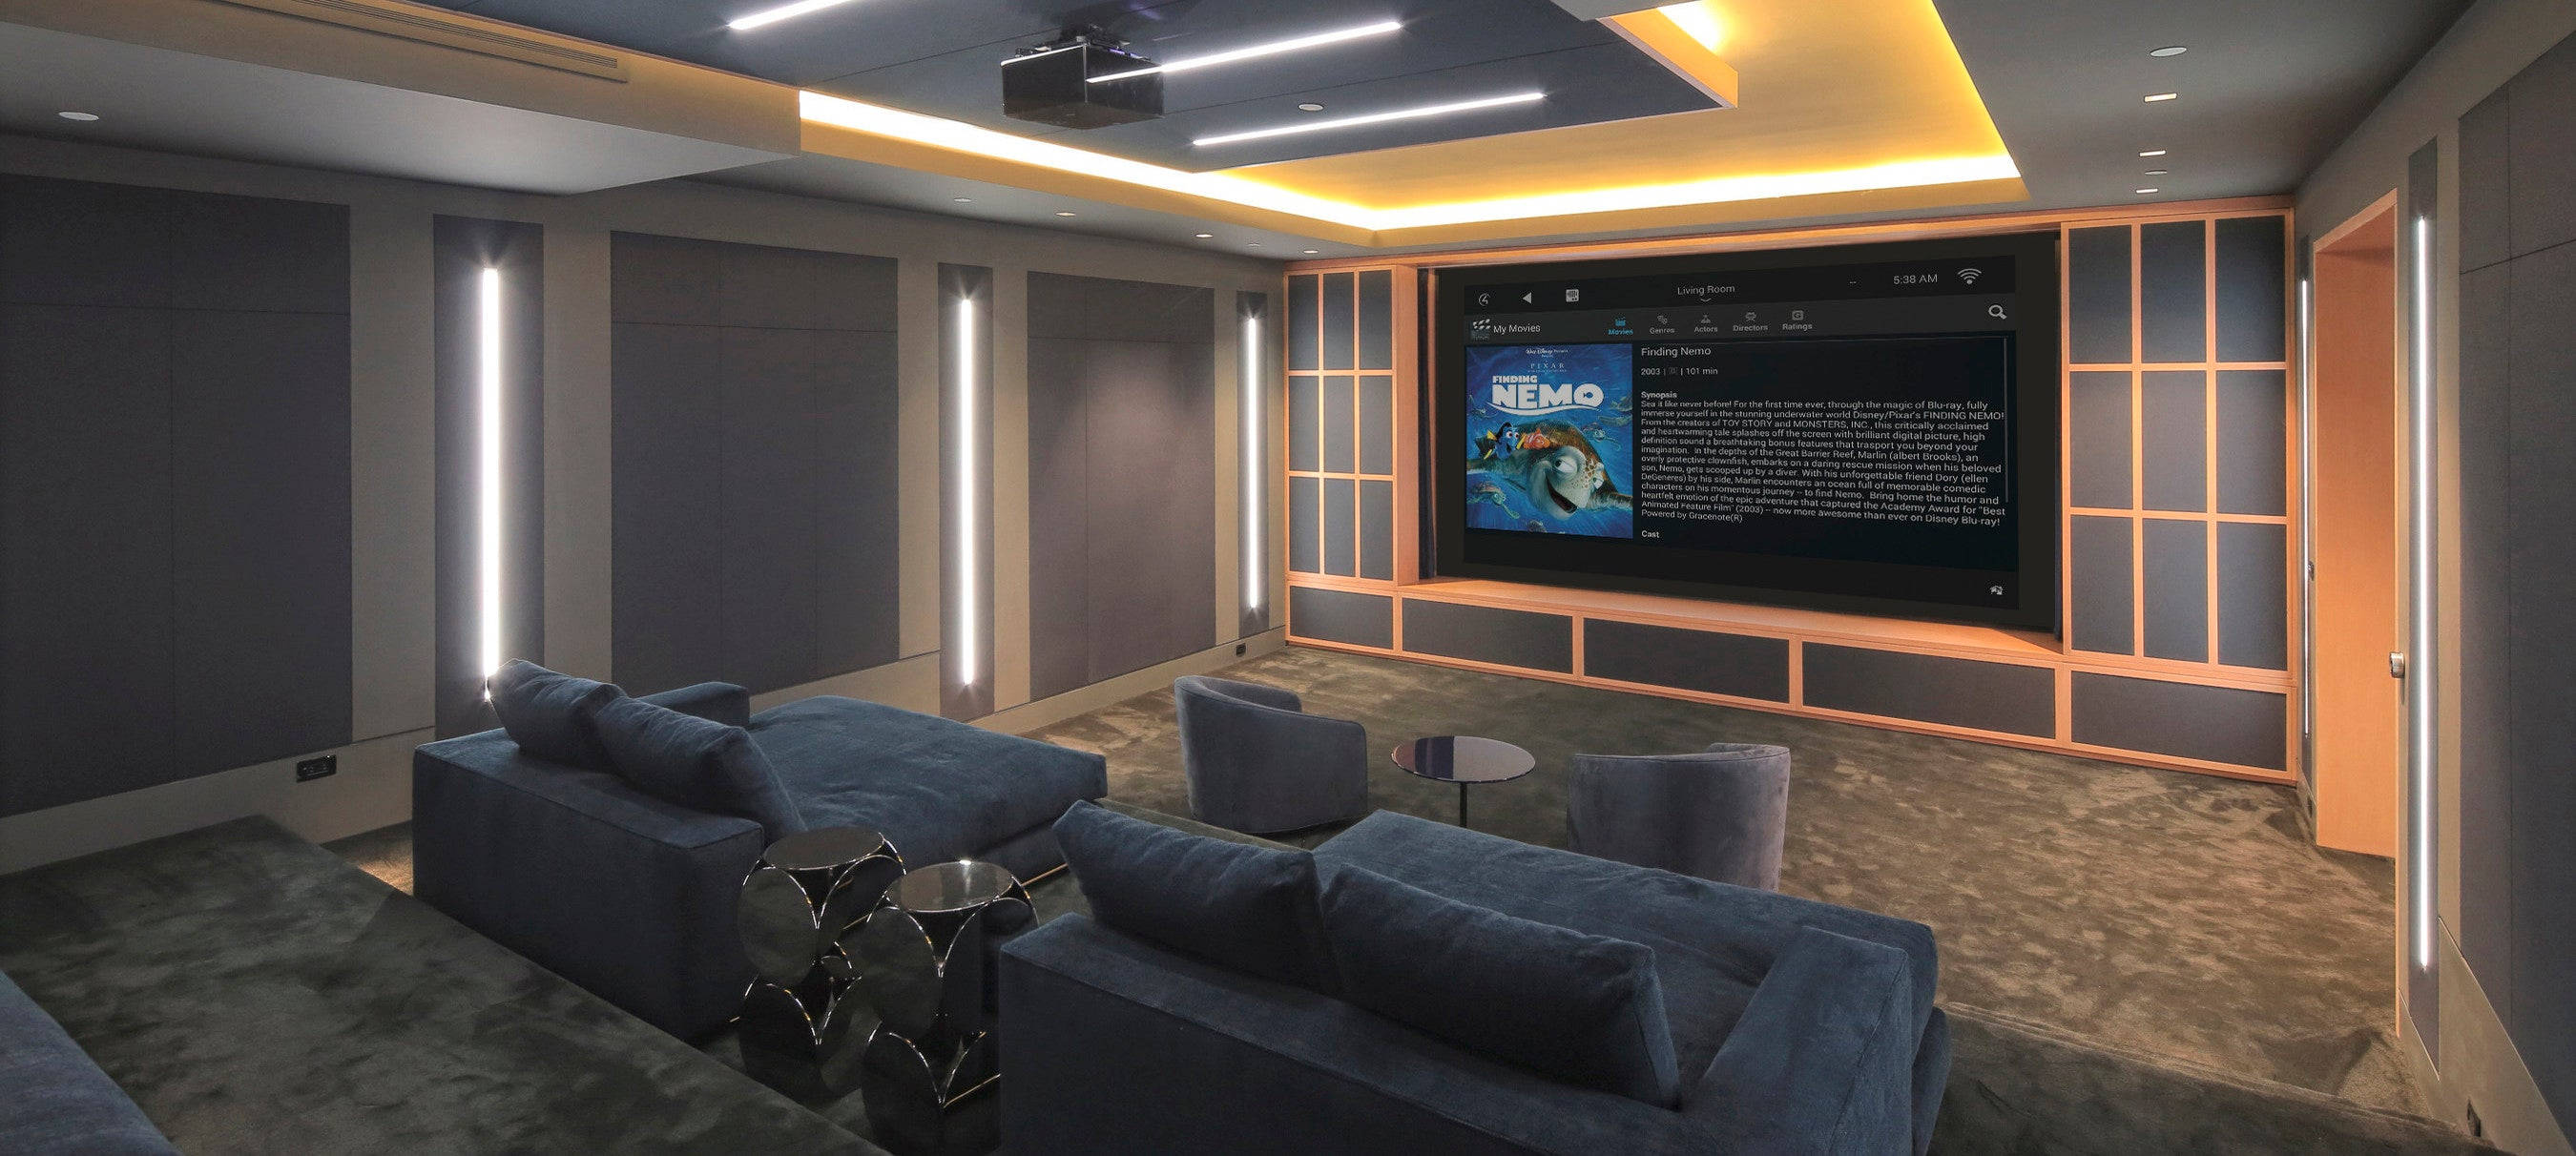 Home Theater Design Services in Long Island and NYC | Audio Den on kitchenette design, laundry room design, bathroom design, gourmet kitchen design, gym design, basketball court design, bar design, lounge design, steam room design, fireplaces design,